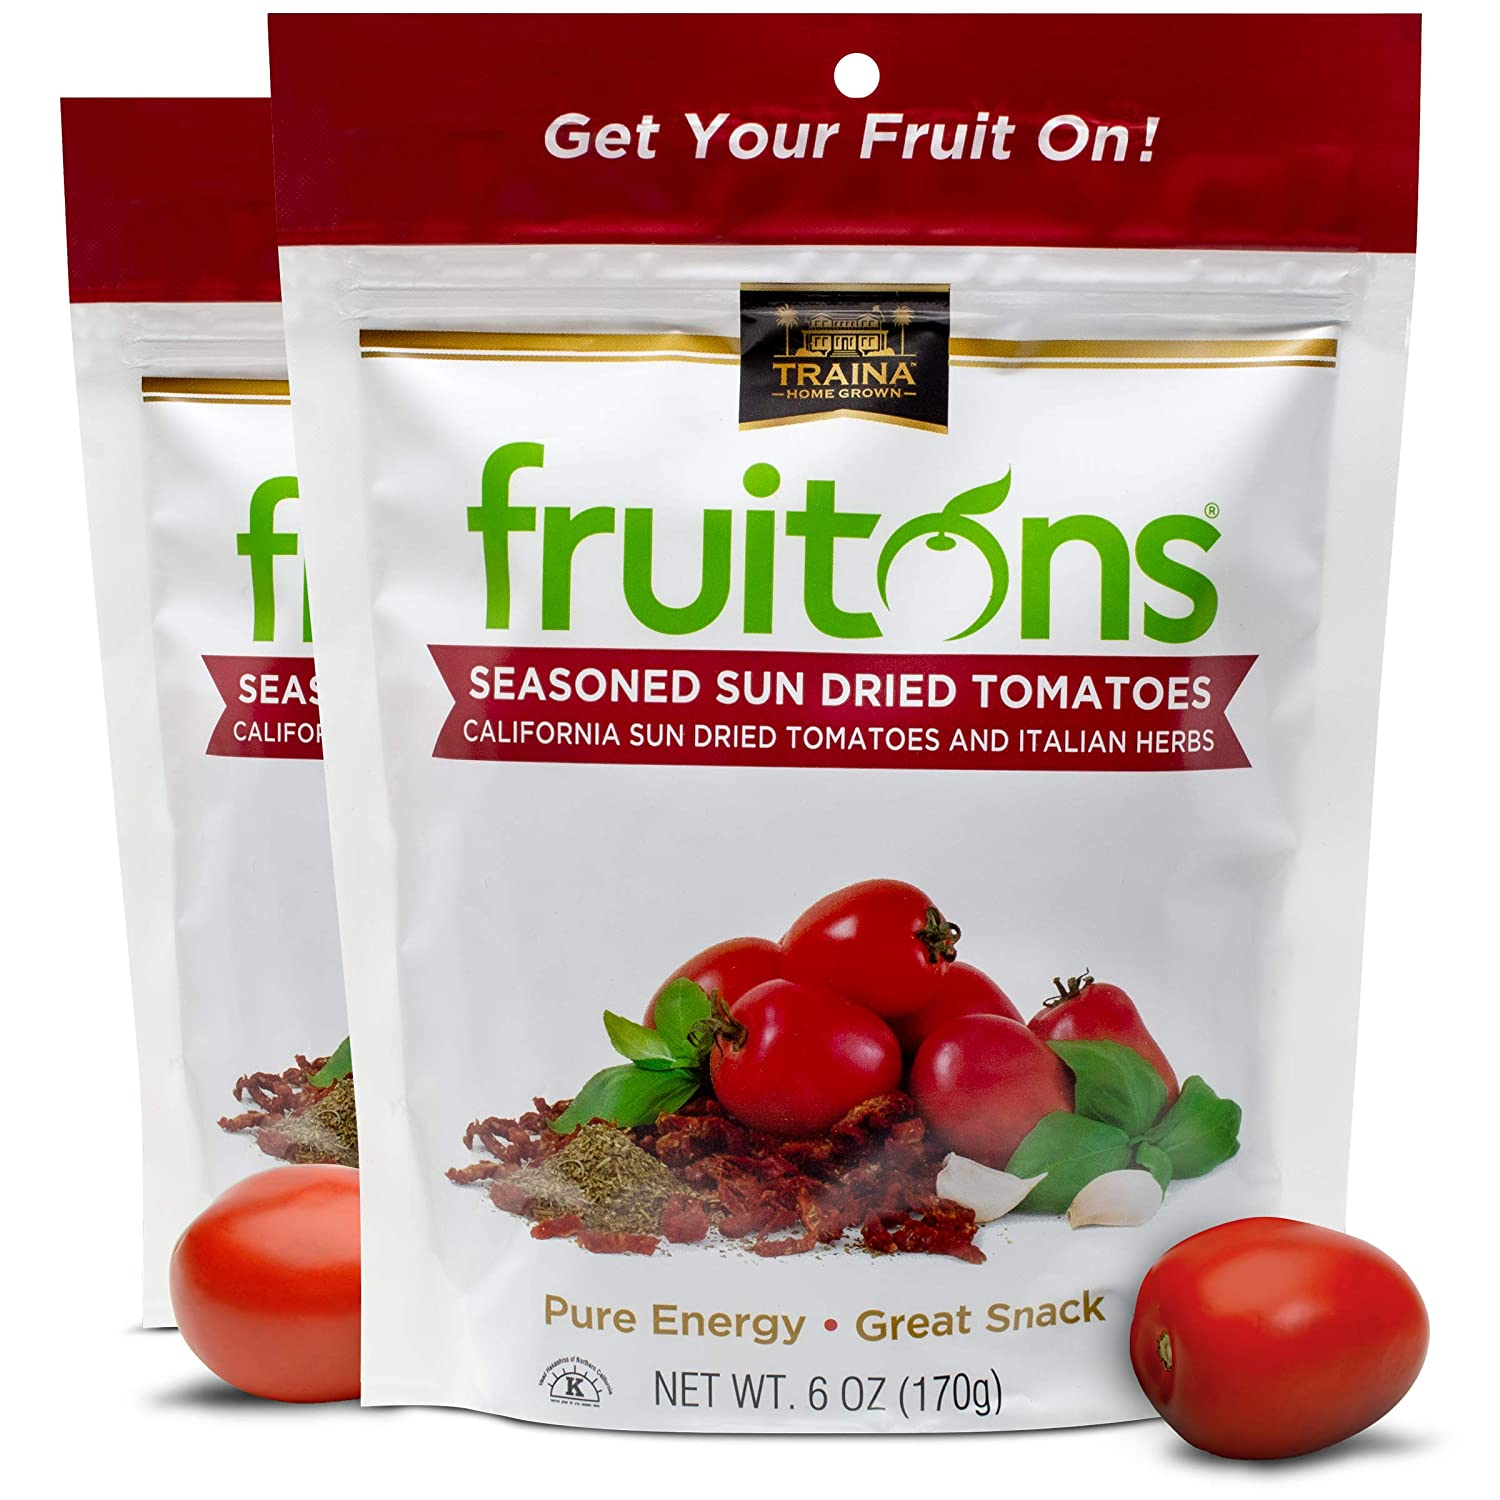 Traina Home Grown Fruitons Seasoned California Sun Dried Tomatoes and Italian Herbs - No Added Sugar, Non GMO, Gluten Free, Kosher Certified, Tomatoes are a low calorie food, 6-OZ Pouch (Pack of 2)